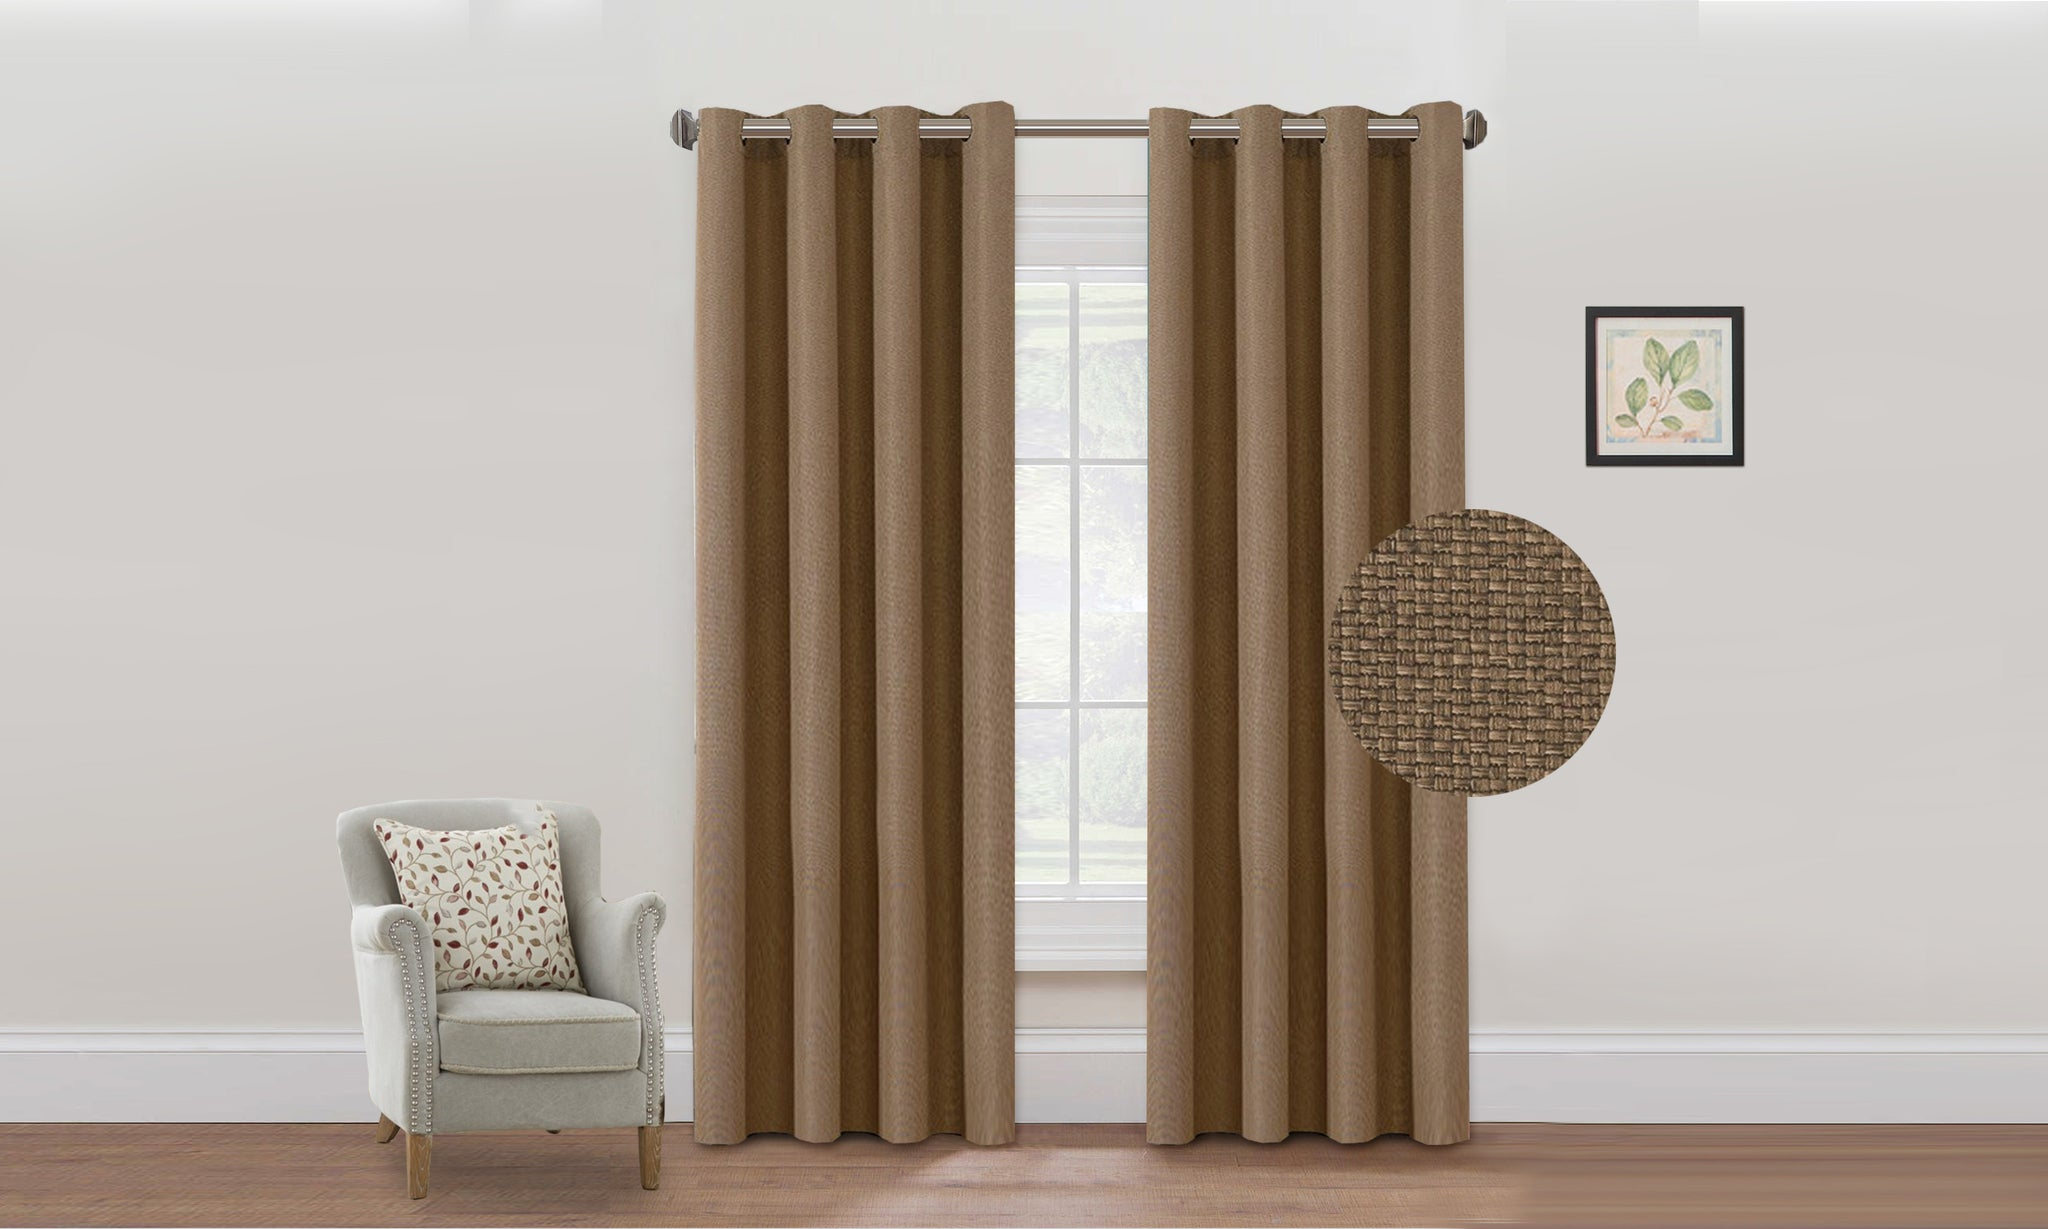 tiebacks curtains index blackout white eyelet home furnishings including various luxury linen sizes curtain cream